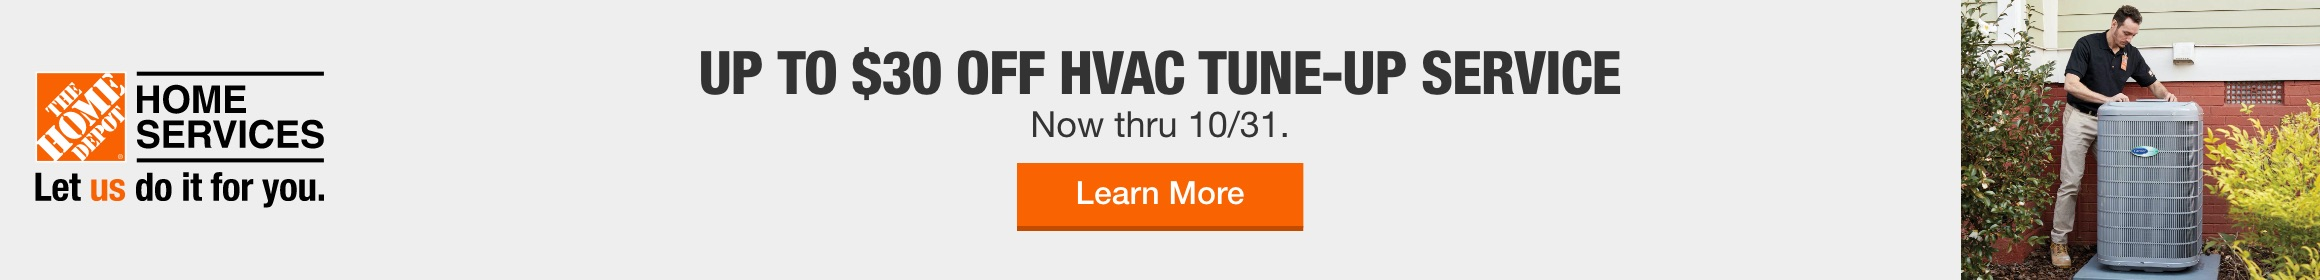 UP TO $30 OFF HVAC TUNE UP SERVICE. NOW THRU 10/31. LEARN MORE